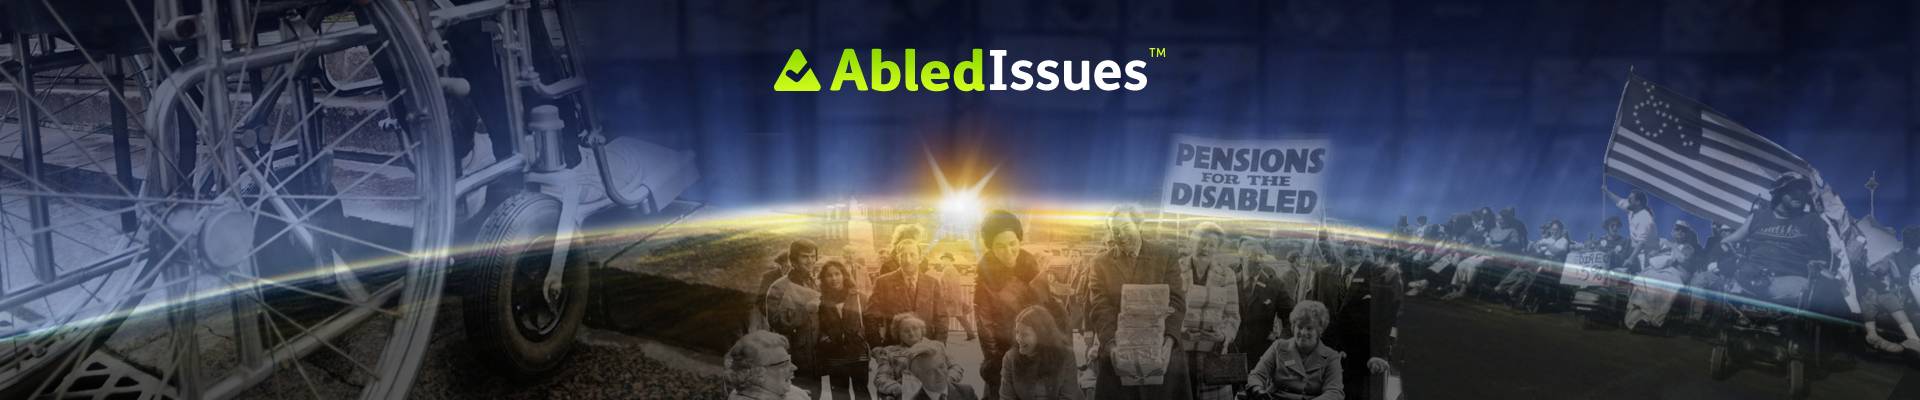 AbledIssues banner shows half-dissolved images from marches for human rights and disability rights and a close up of wheelchair tires stuck on a staircase over a backdrop of the Earth at sunrise as seen from space with the AbledIssues Logo centered near the top.